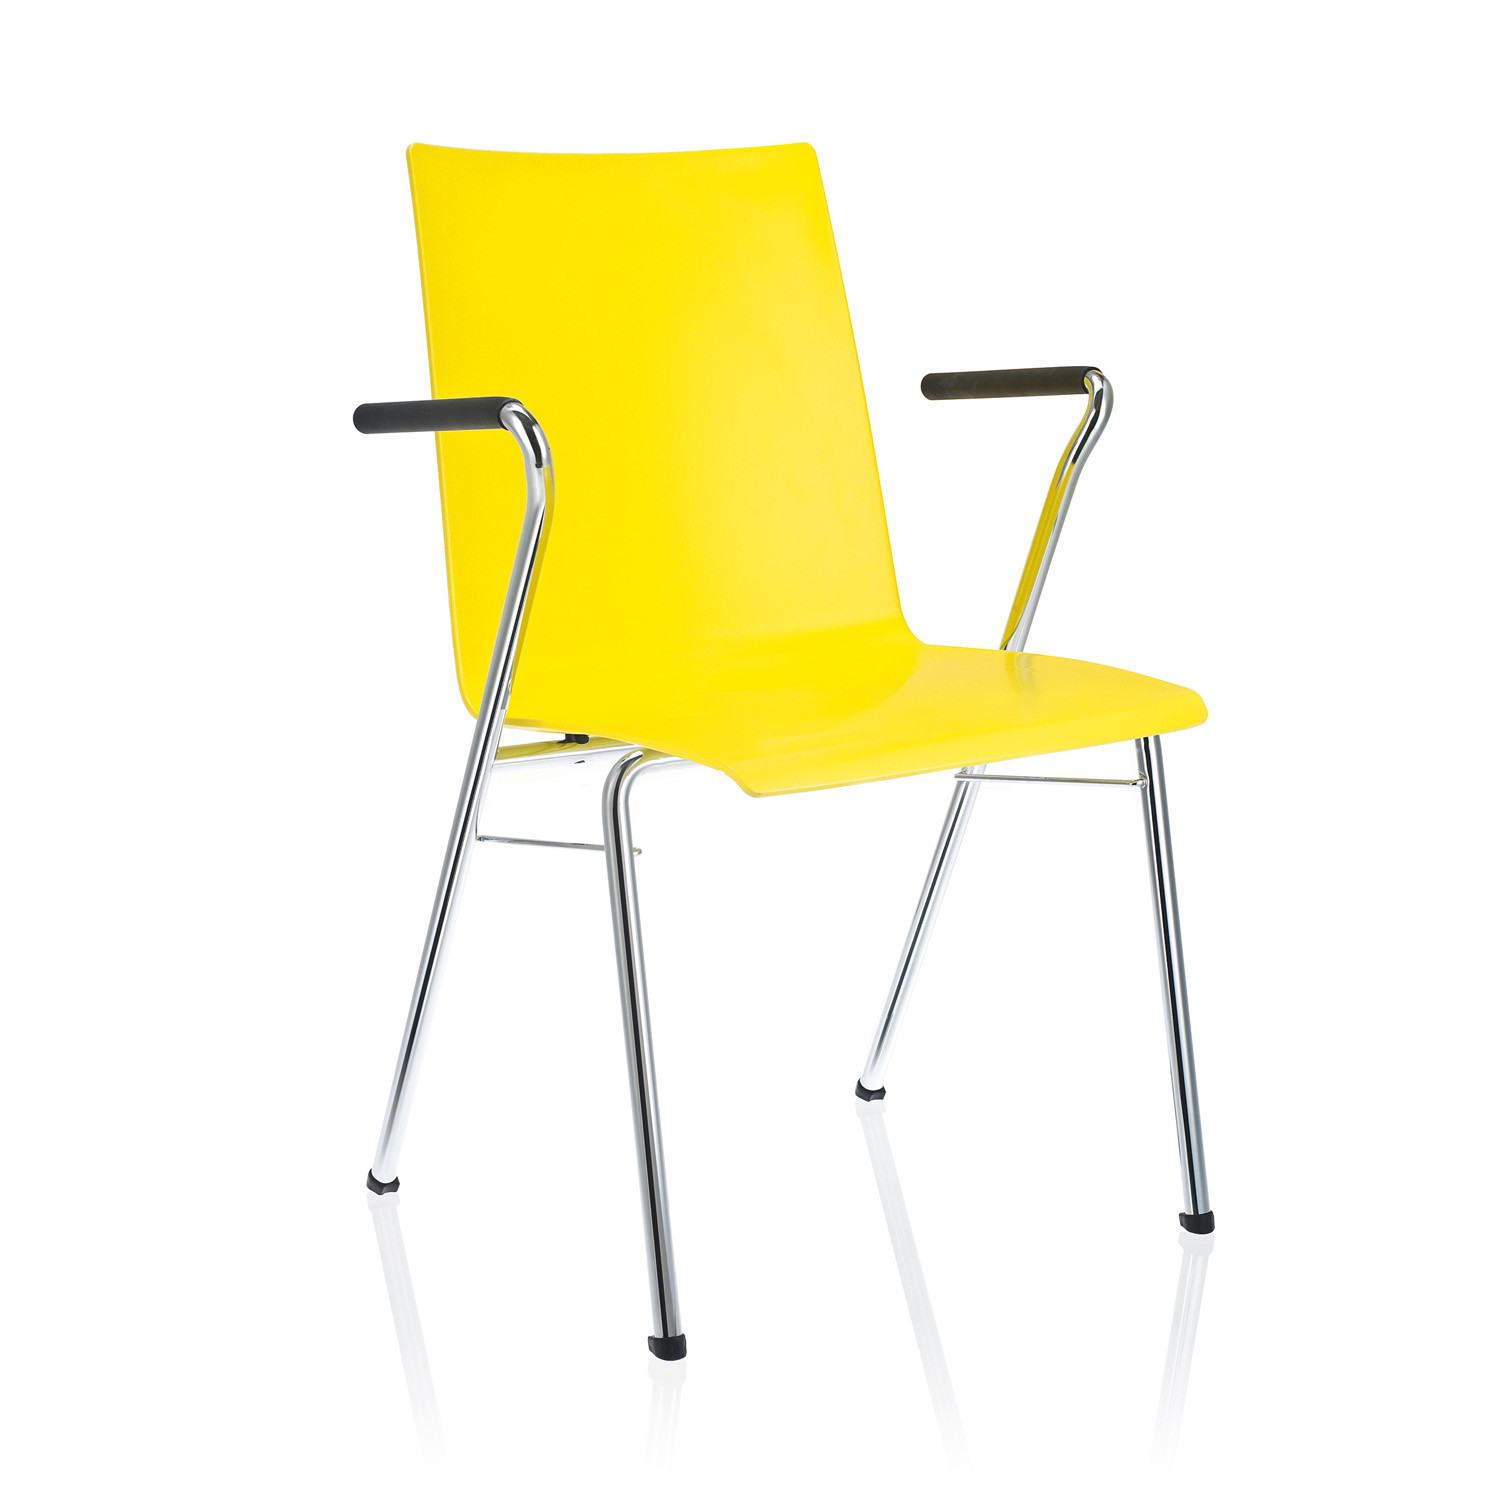 Tool 2 Chair featuring armrest with softgrip tube